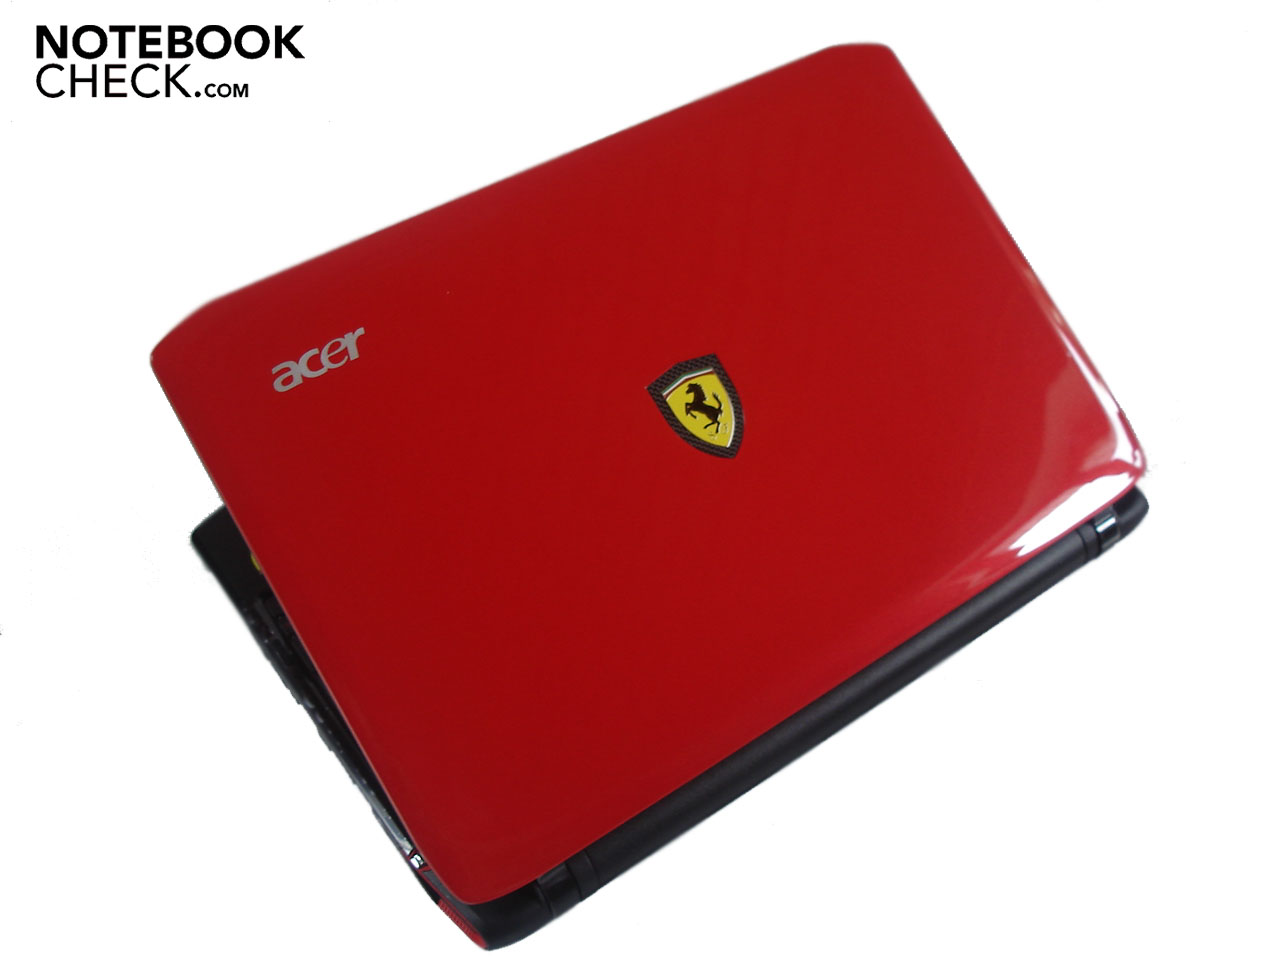 ACER FERRARI 3200 NOTEBOOK AMD CPU WINDOWS 7 DRIVER